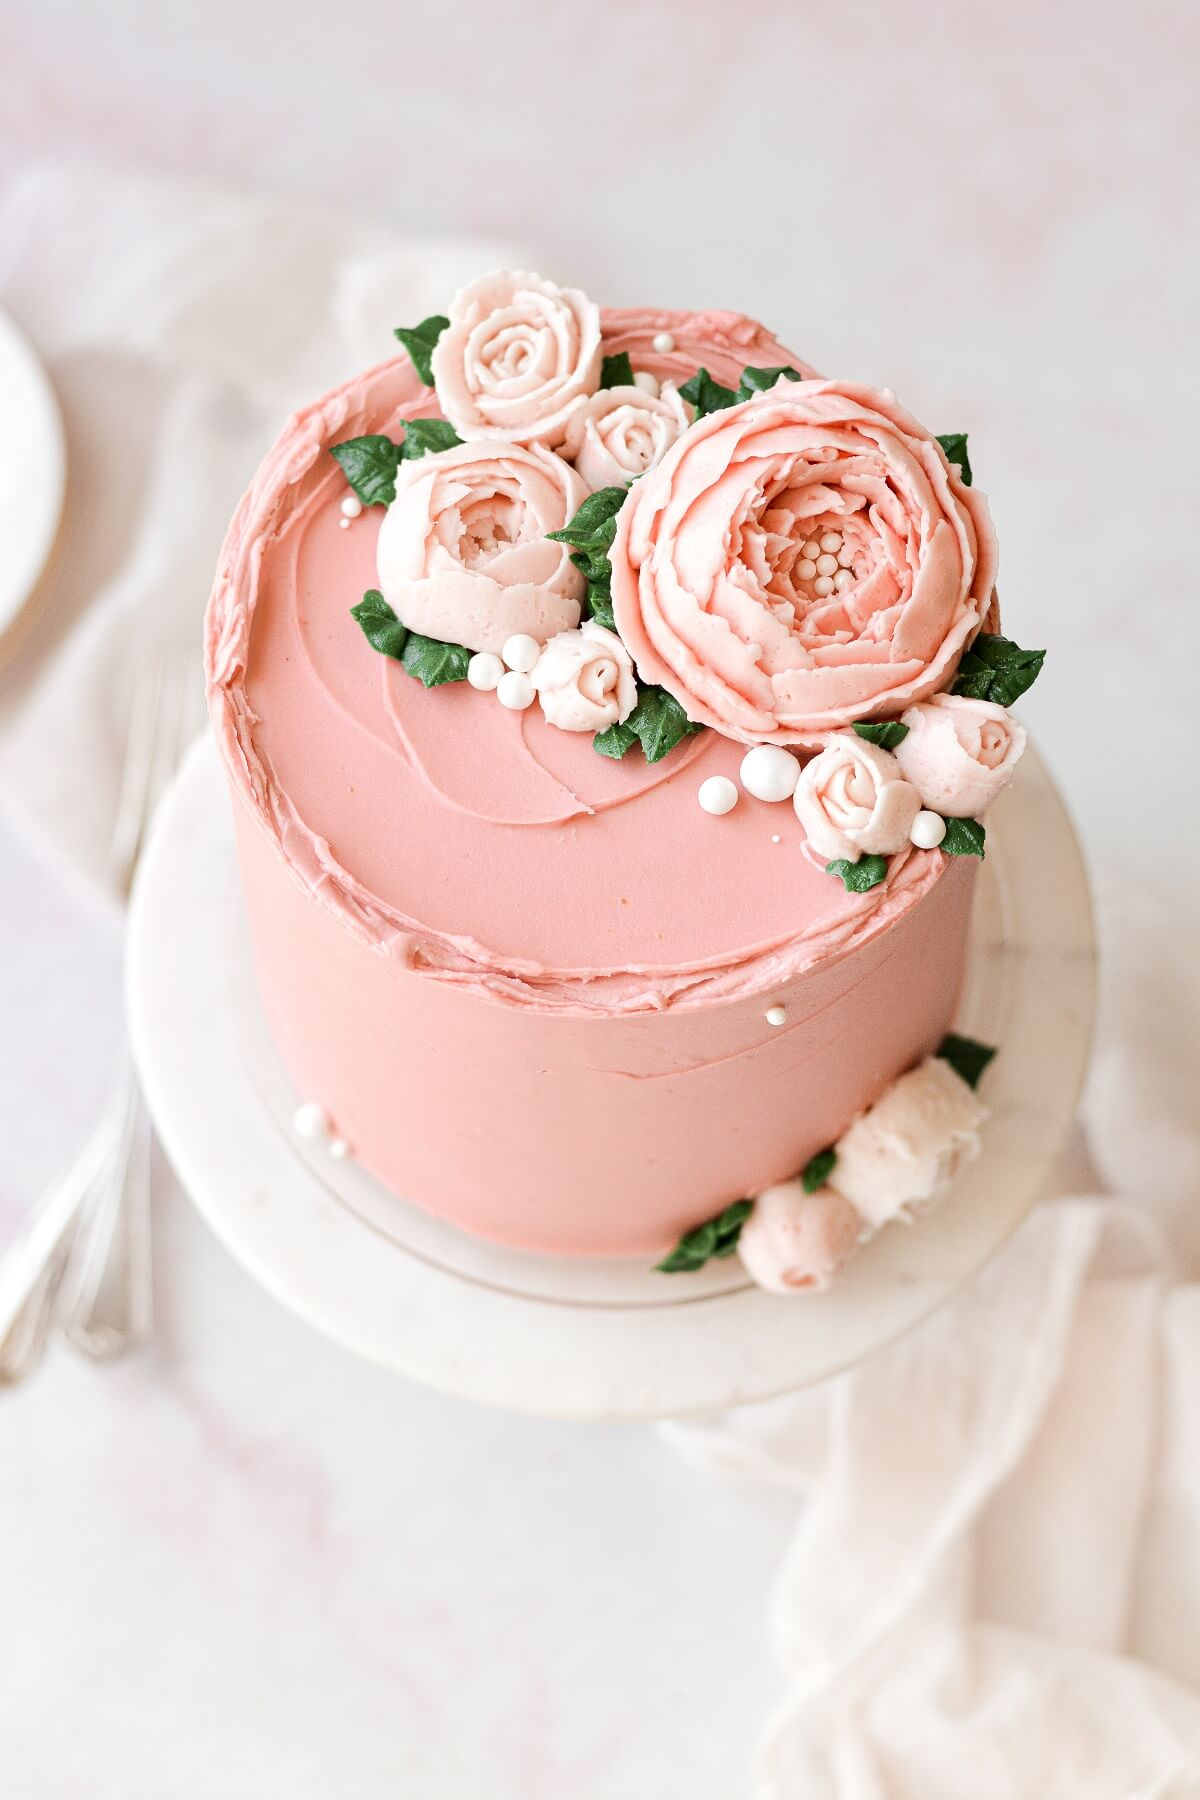 A layer cake frosted with pink buttercream and buttercream flowers.